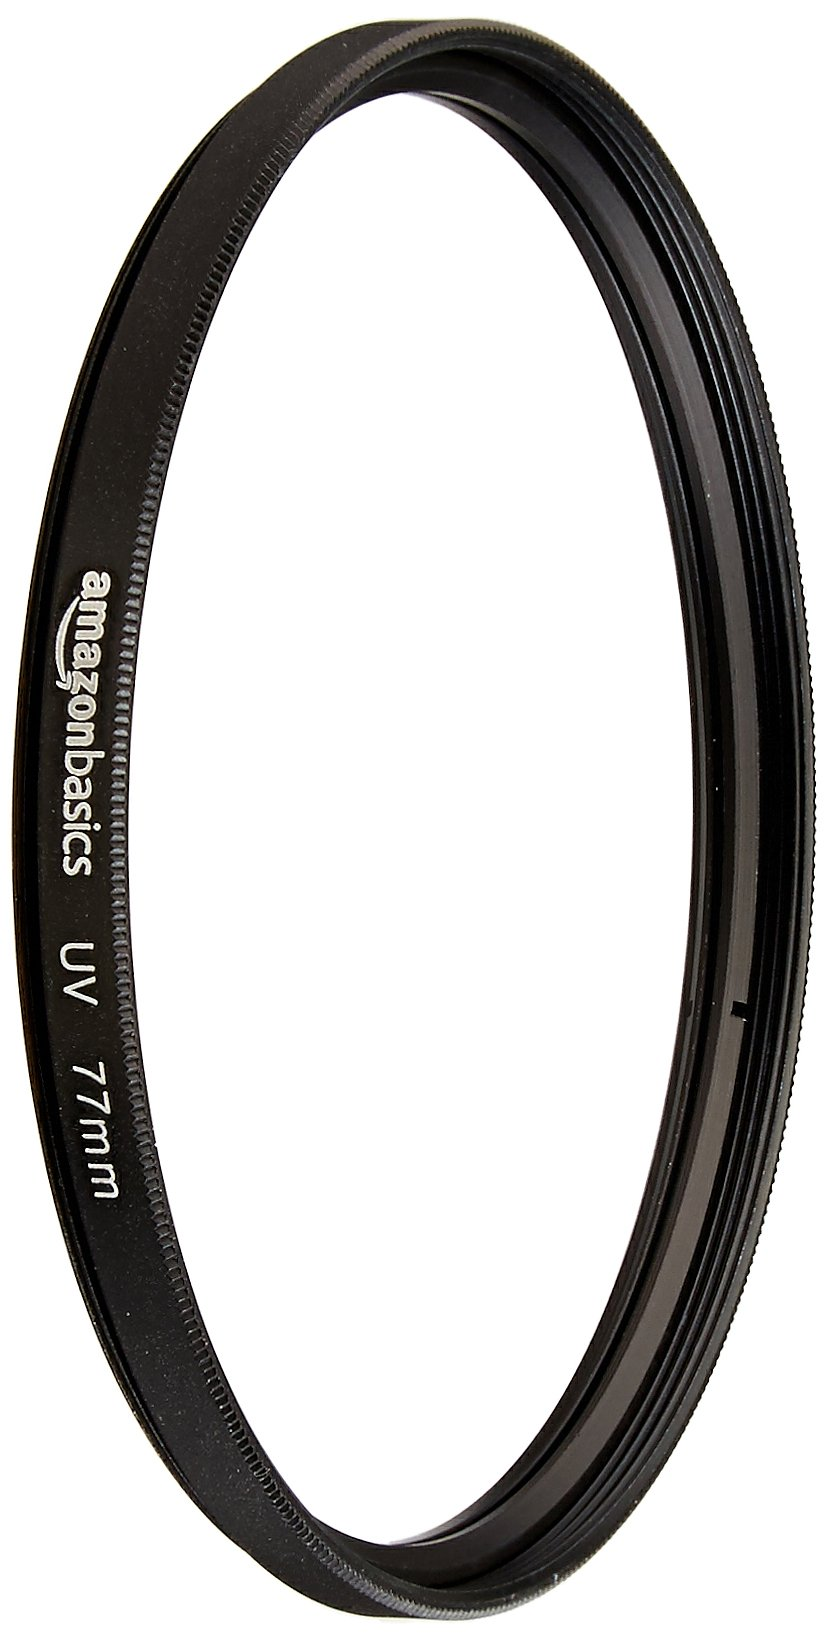 AmazonBasics UV Protection Lens Filter - 77 mm